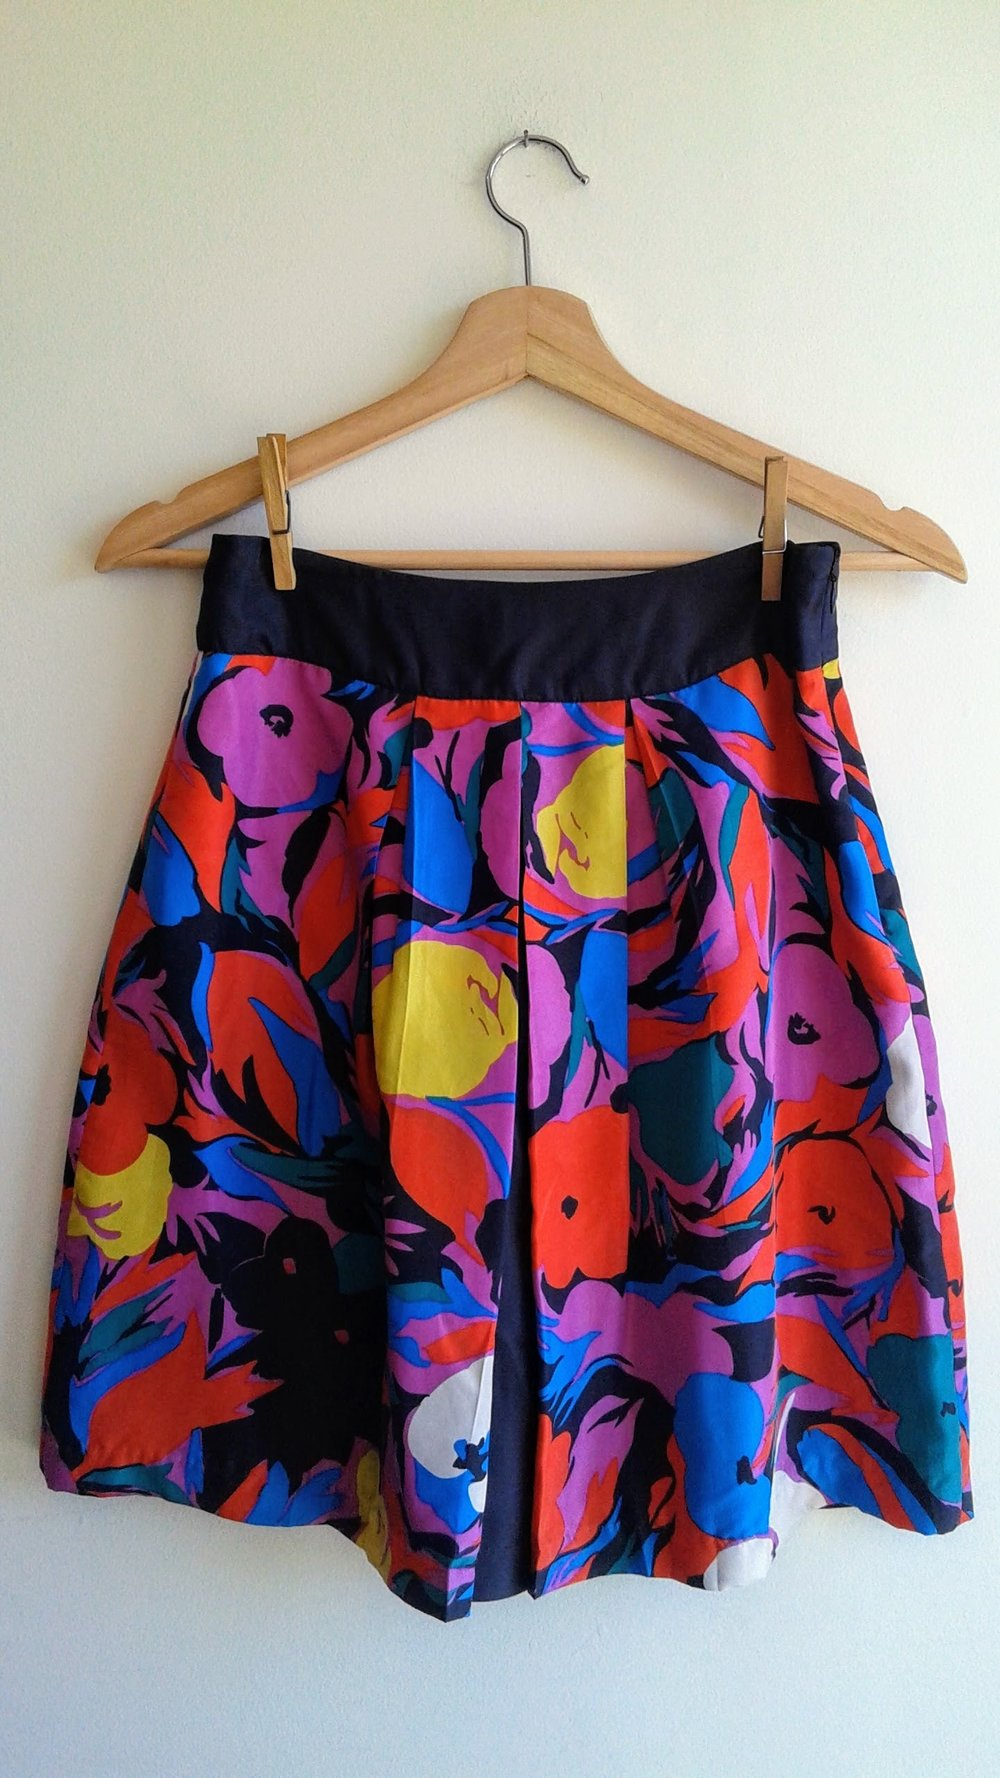 Lil skirt; Size 0, $28